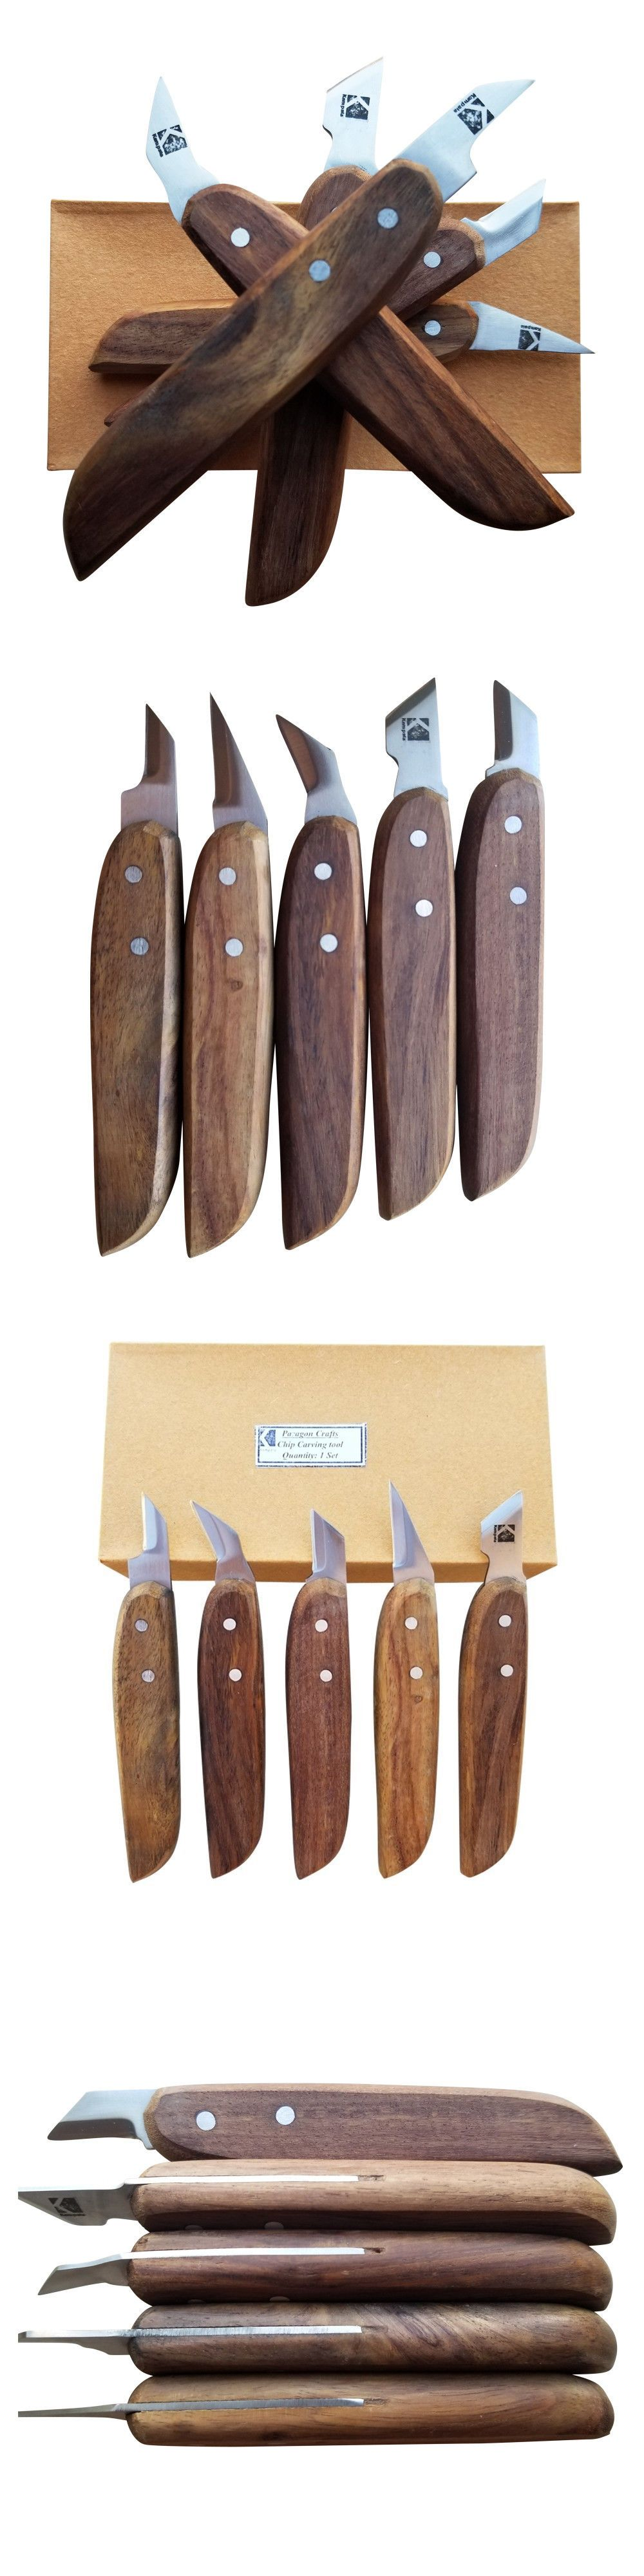 Wood carving hand tools wood chip carving knife tool set